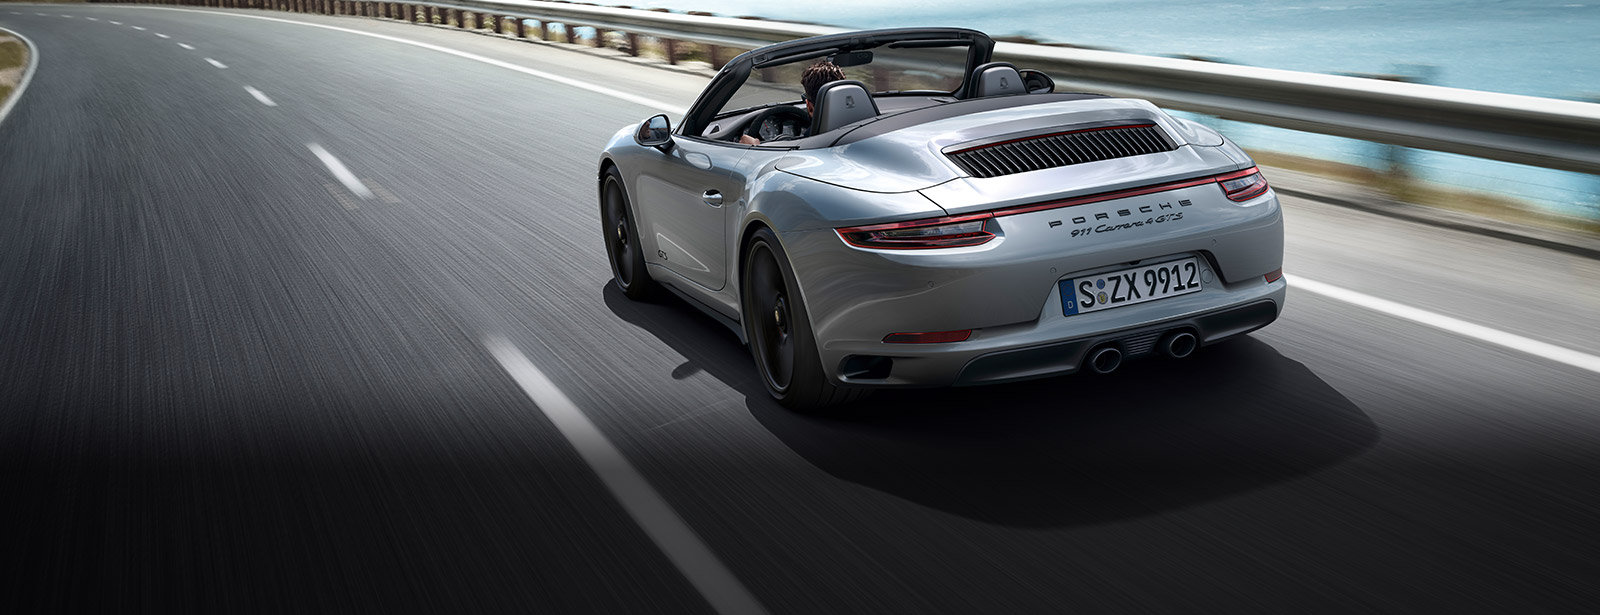 The new 911 Carrera 4 GTS Cabriolet